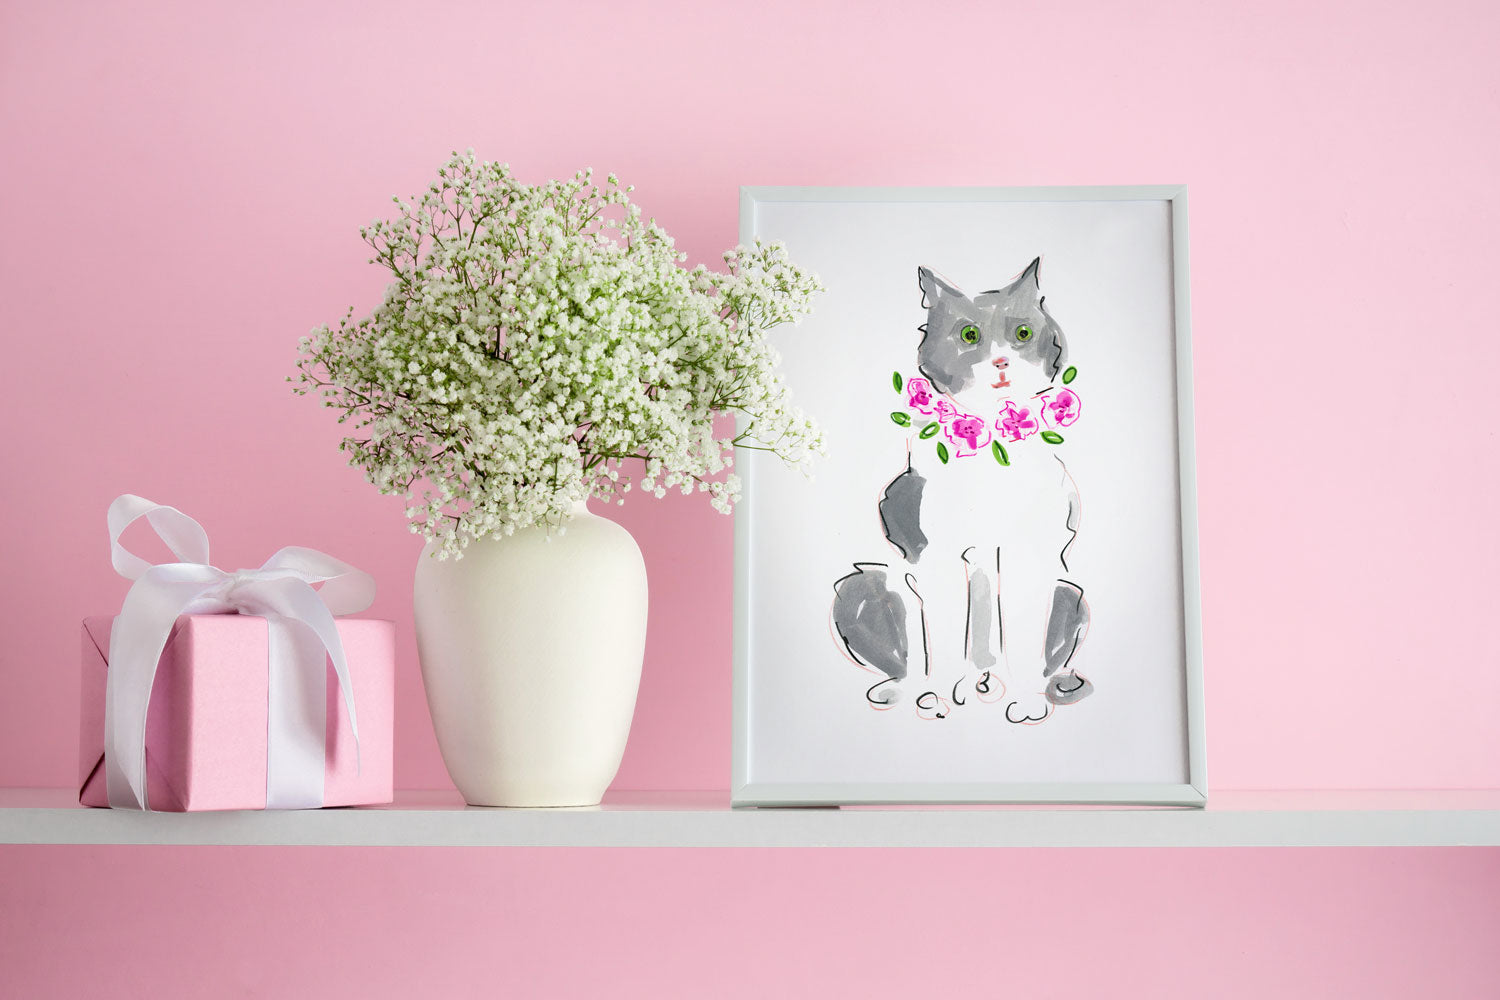 Grey and White Cat Art Print - Cat Illustrations Wall Art Collection-Di Lewis